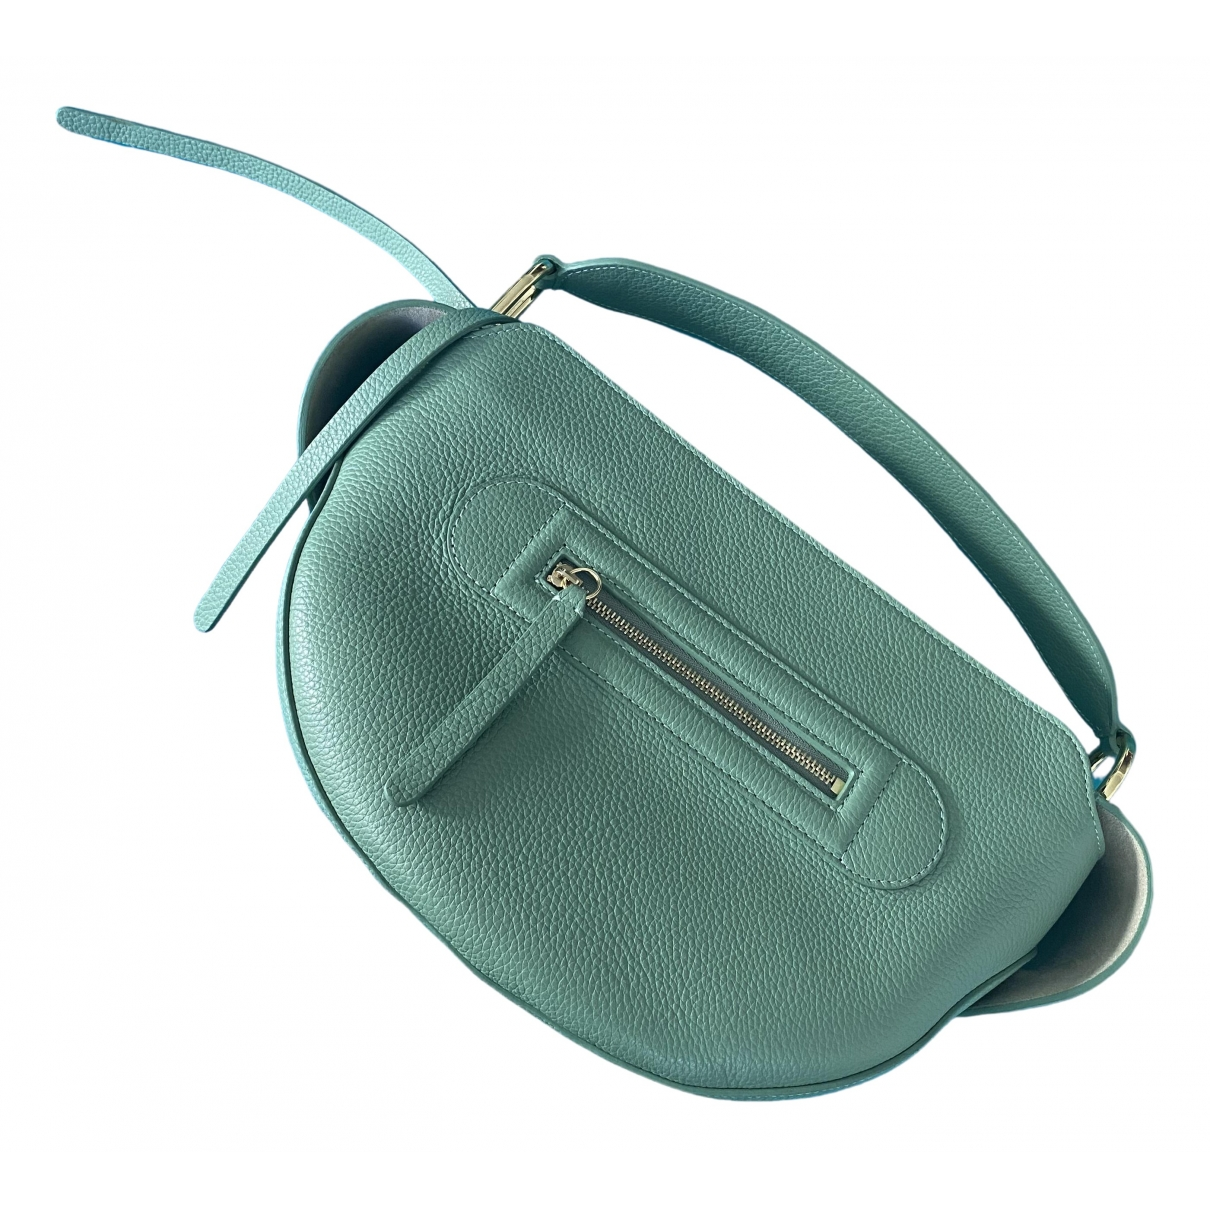 Wandler \N Green Leather handbag for Women \N